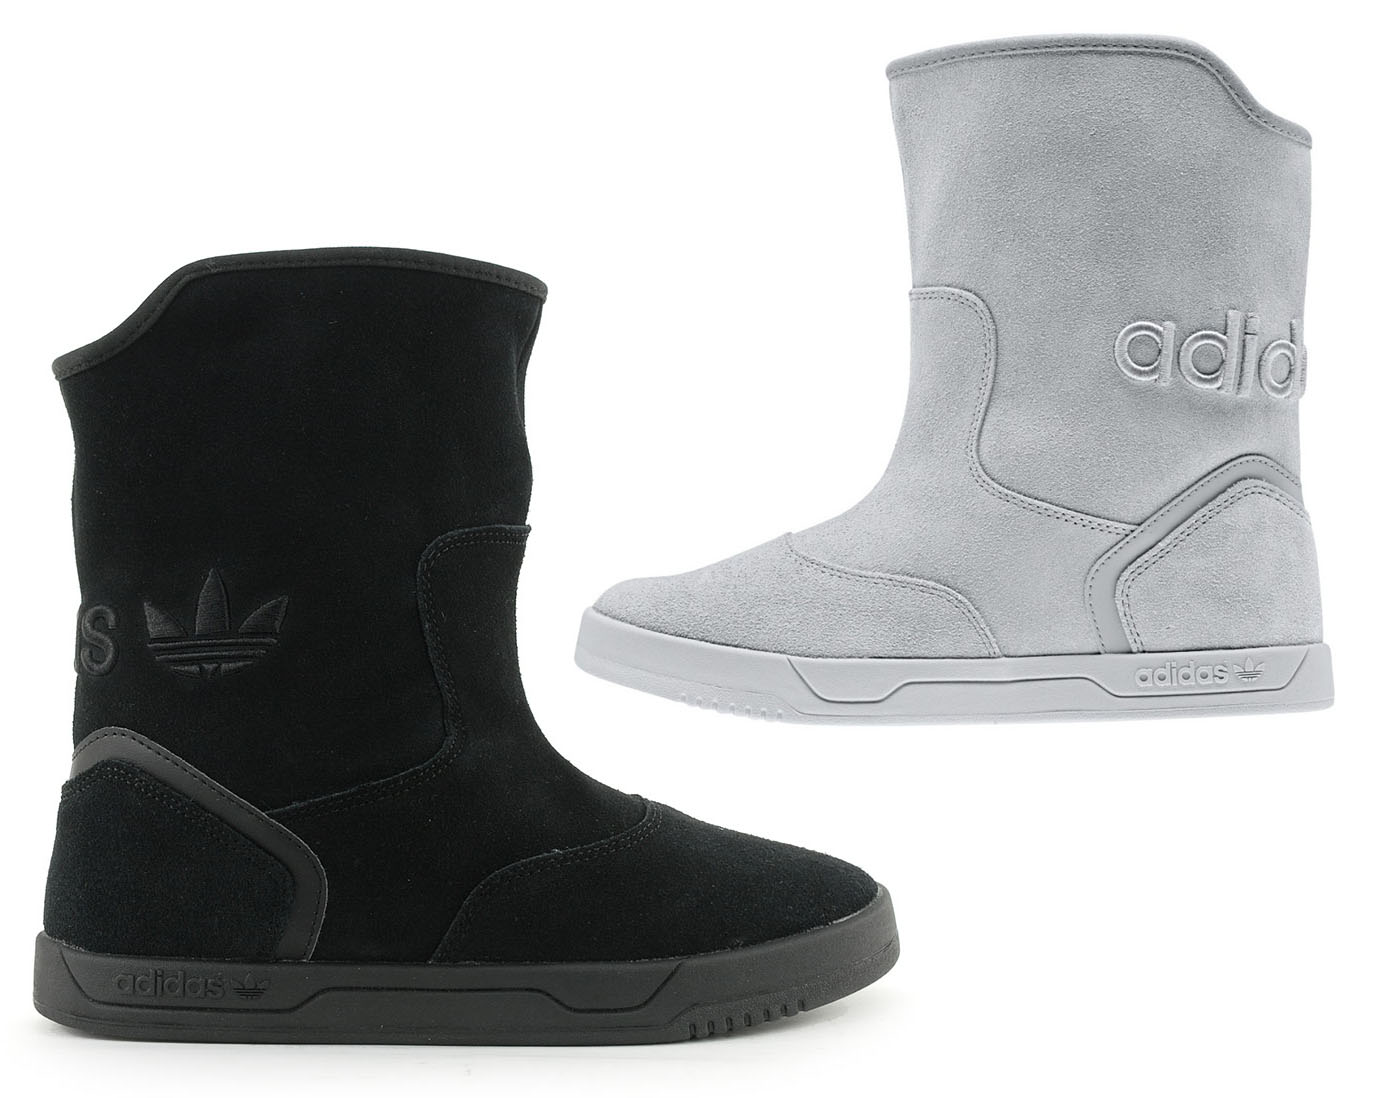 Adidas Womens Shoes With Fur